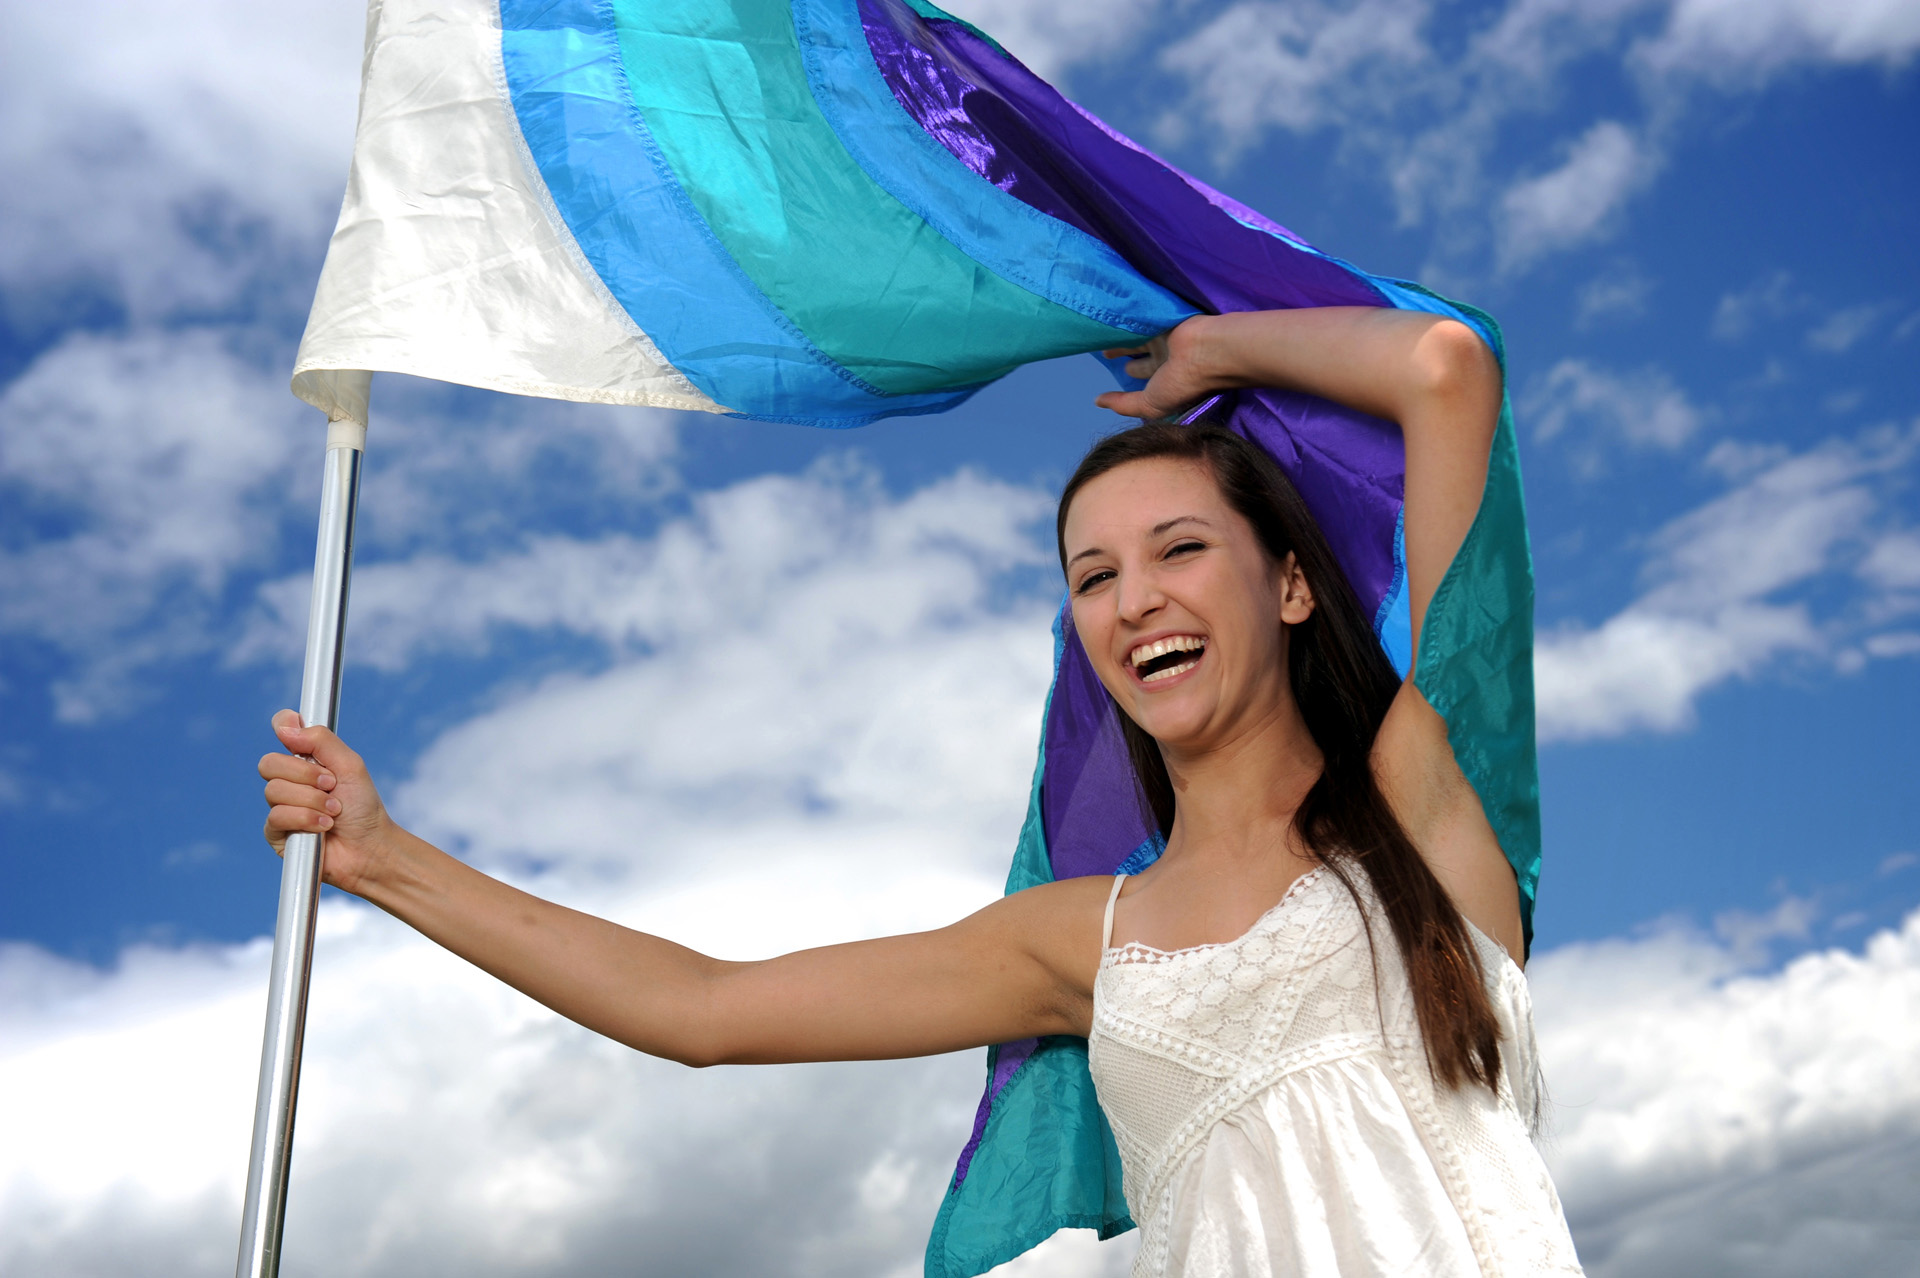 Troy , Michigan senior photographer shows a high school senior showing off her color guard flags during her Troy Senior Photo shoot.